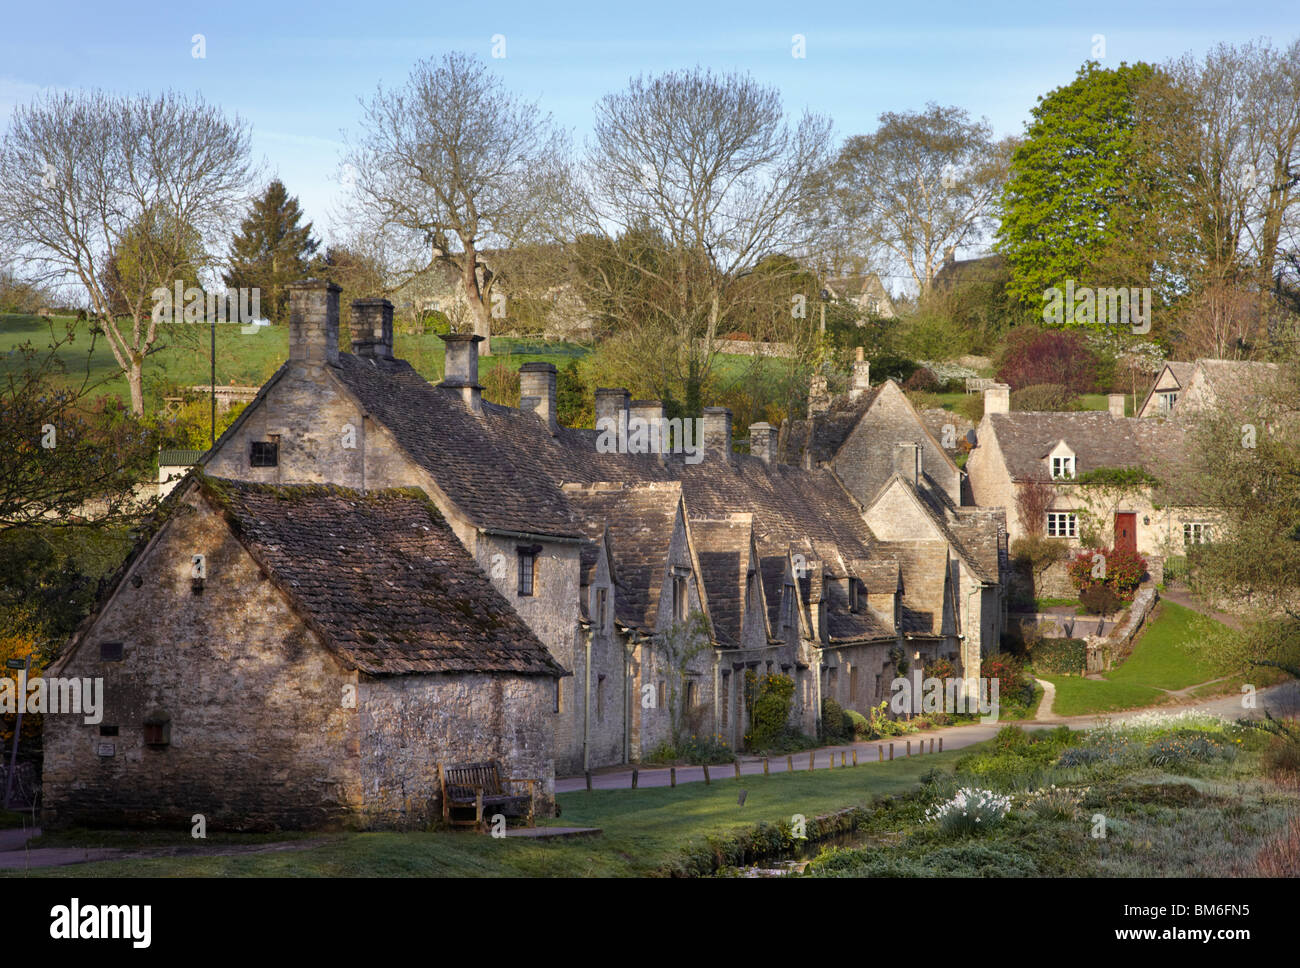 Arlington Row in the village of Bibury, Gloucestershire, England. Stock Photo